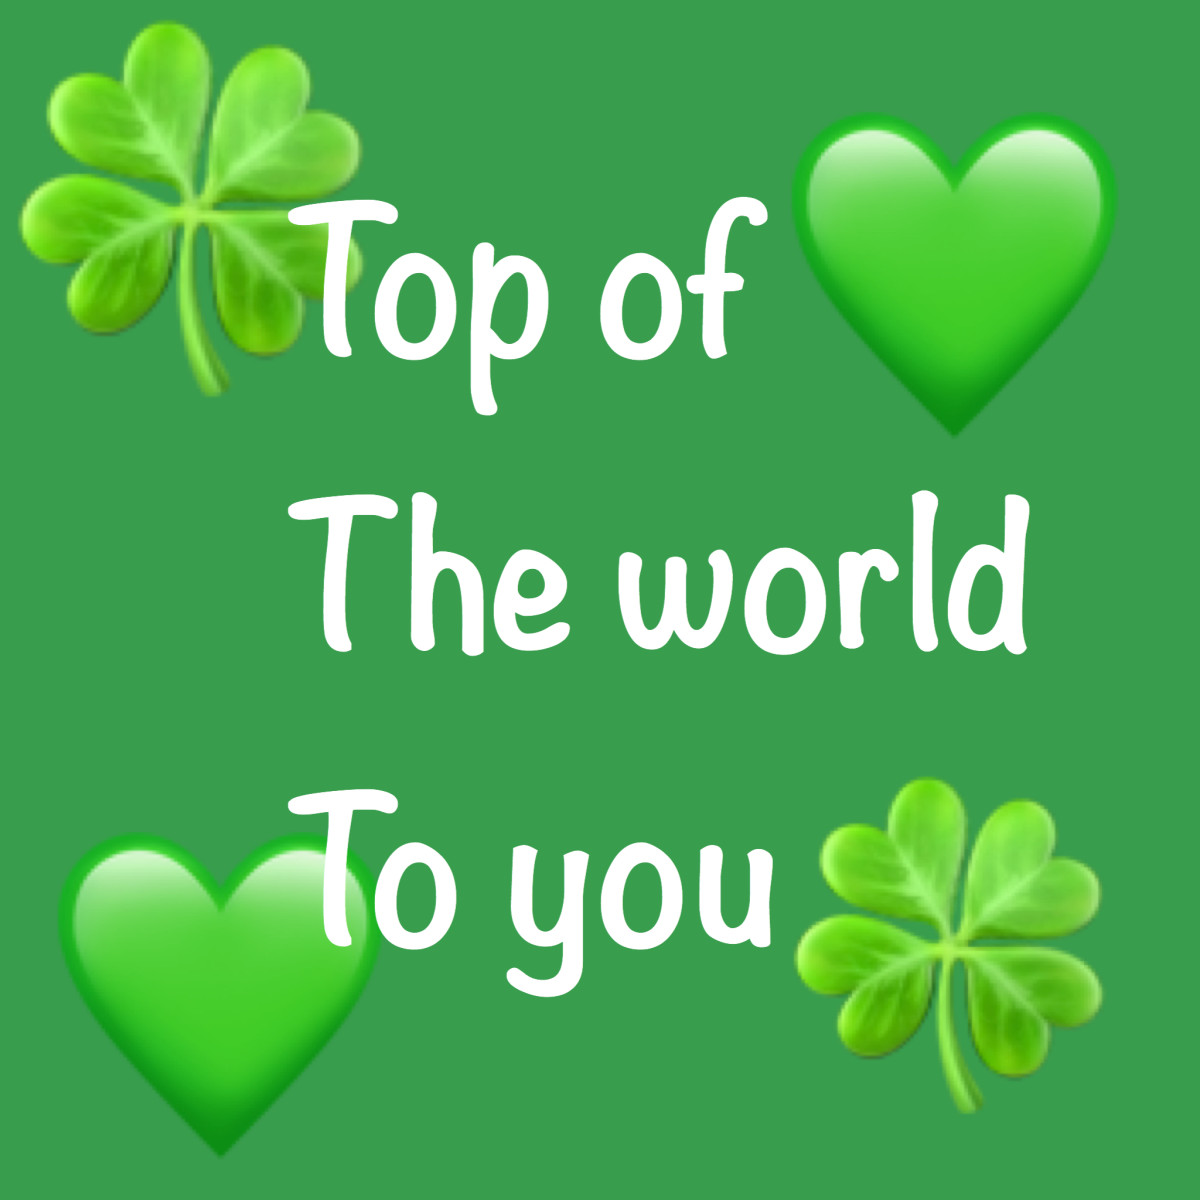 25 Funny Irish Quotes And Sayings